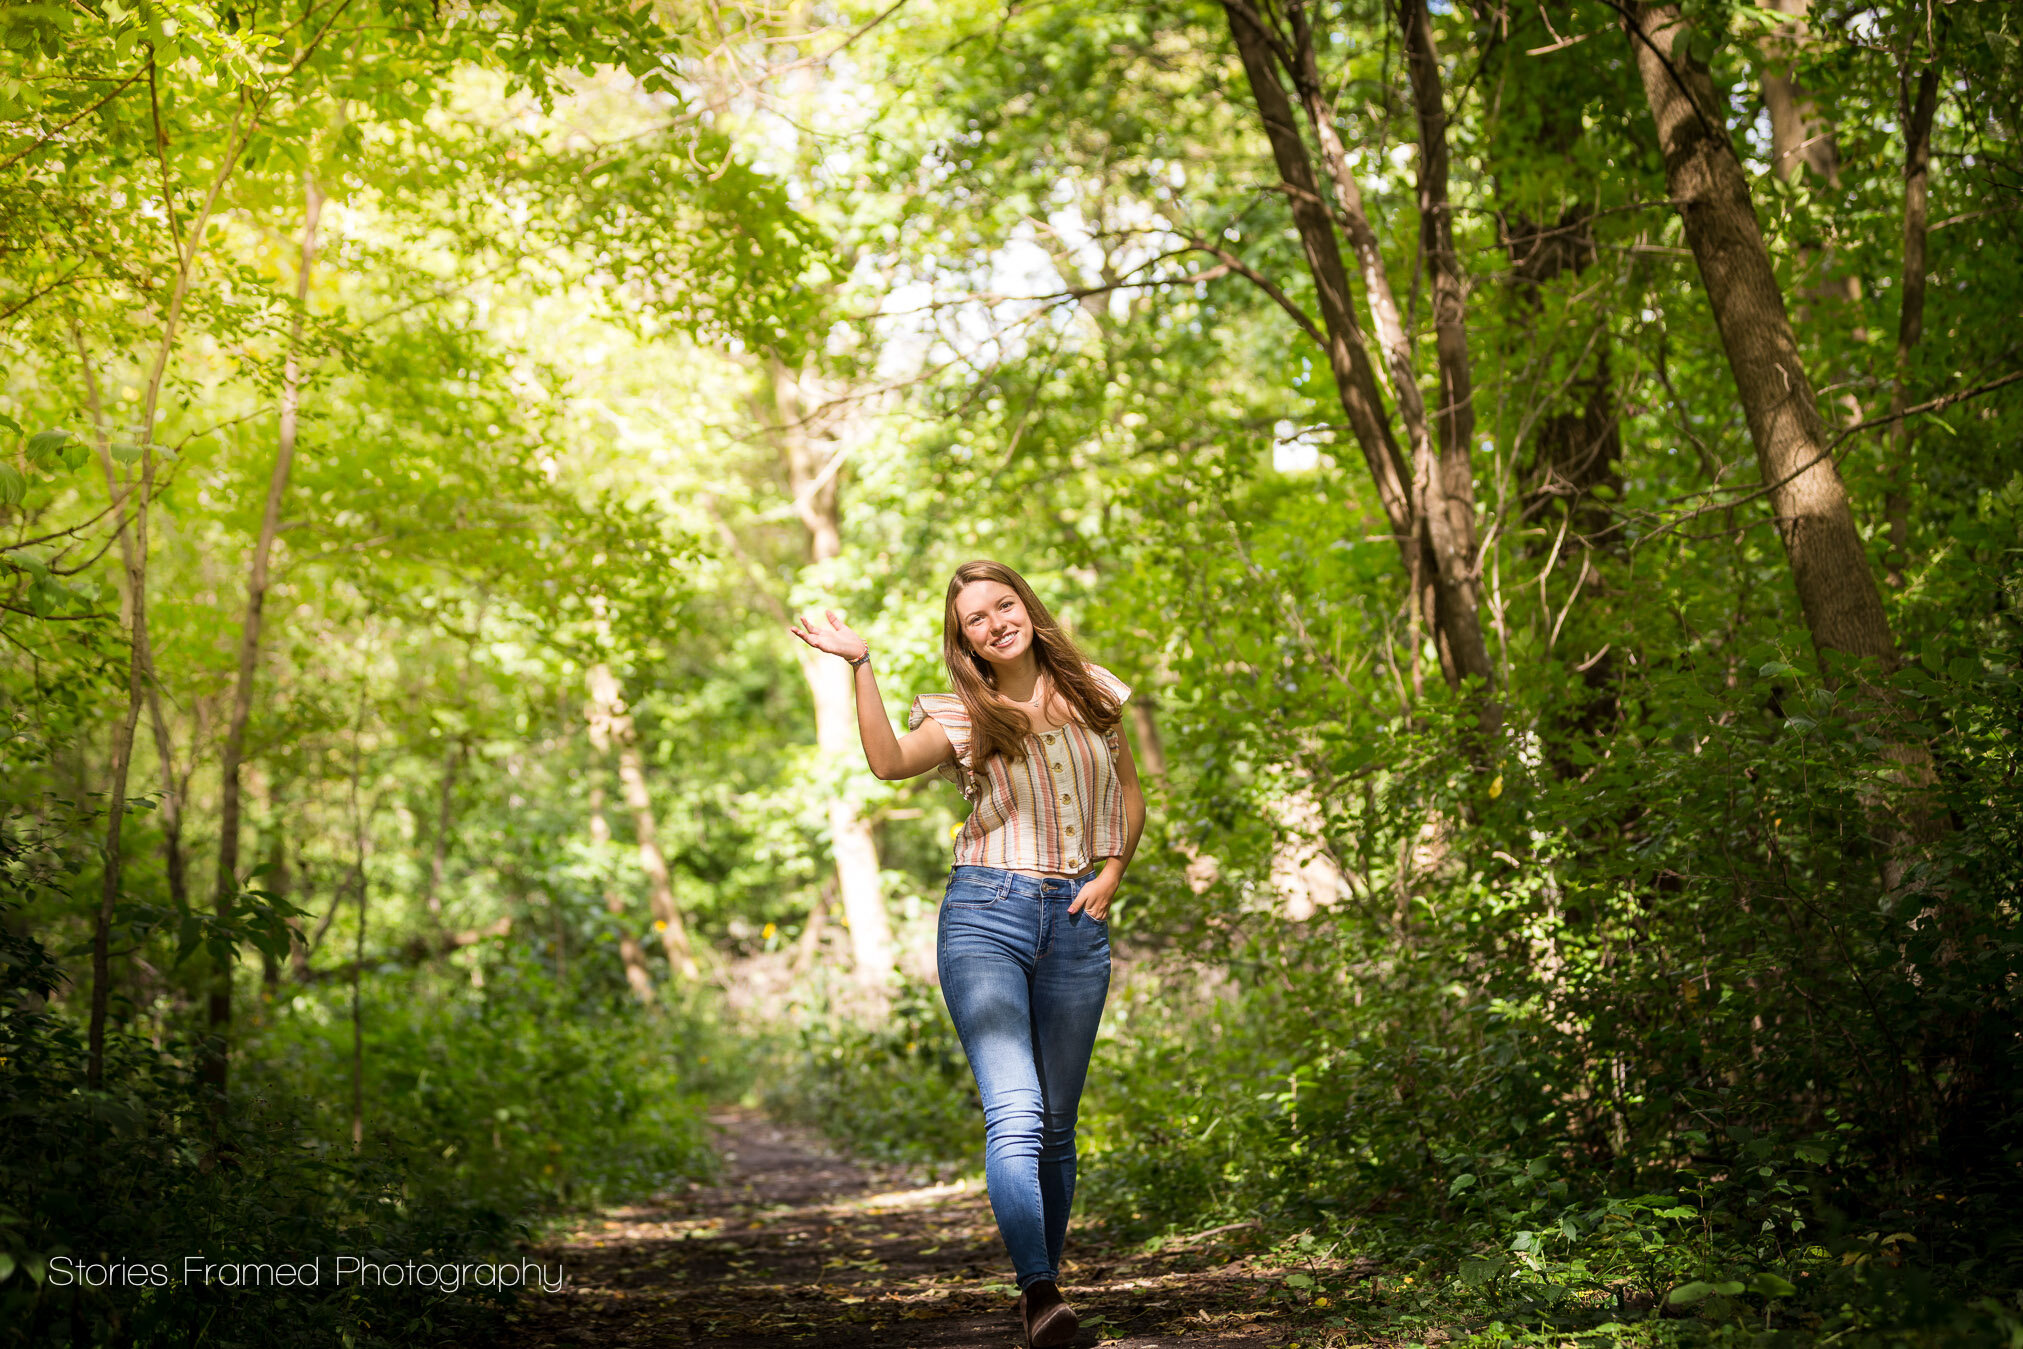 high-school-girl-walking-in-woods.jpg